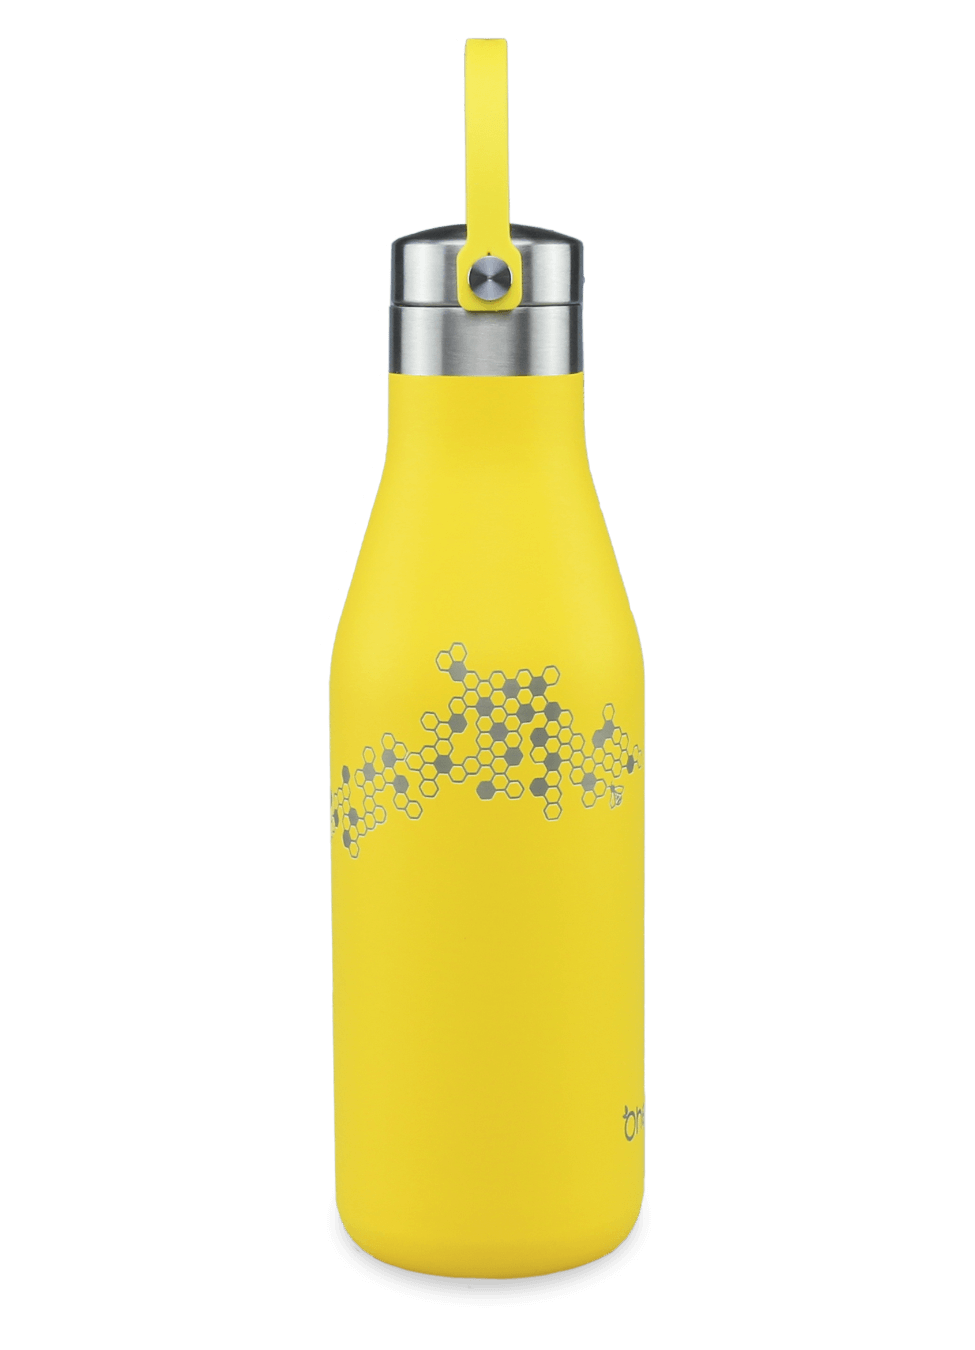 Leak proof refillable yellow bottle with carry strap and laser etched honeycomb and bee